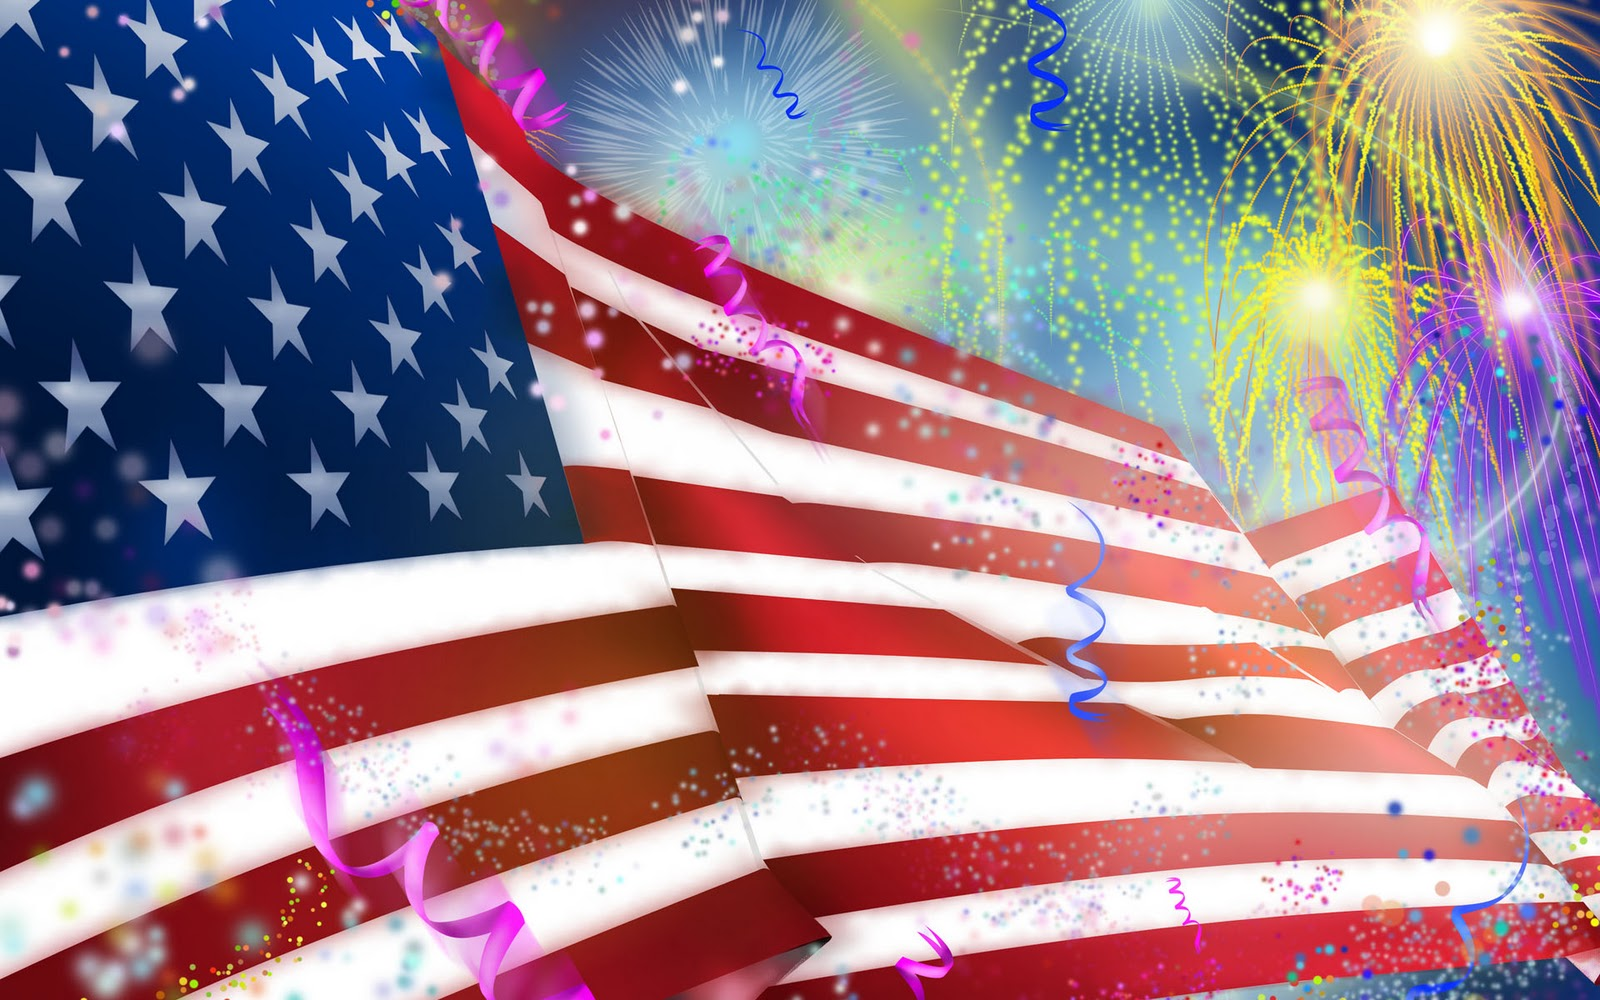 http://1.bp.blogspot.com/-YEaNtipjmn4/T_SdpDWTljI/AAAAAAAADt0/Cgsq7k_OTLc/s1600/4th-July-Independence-Day-Wallpapers.jpg